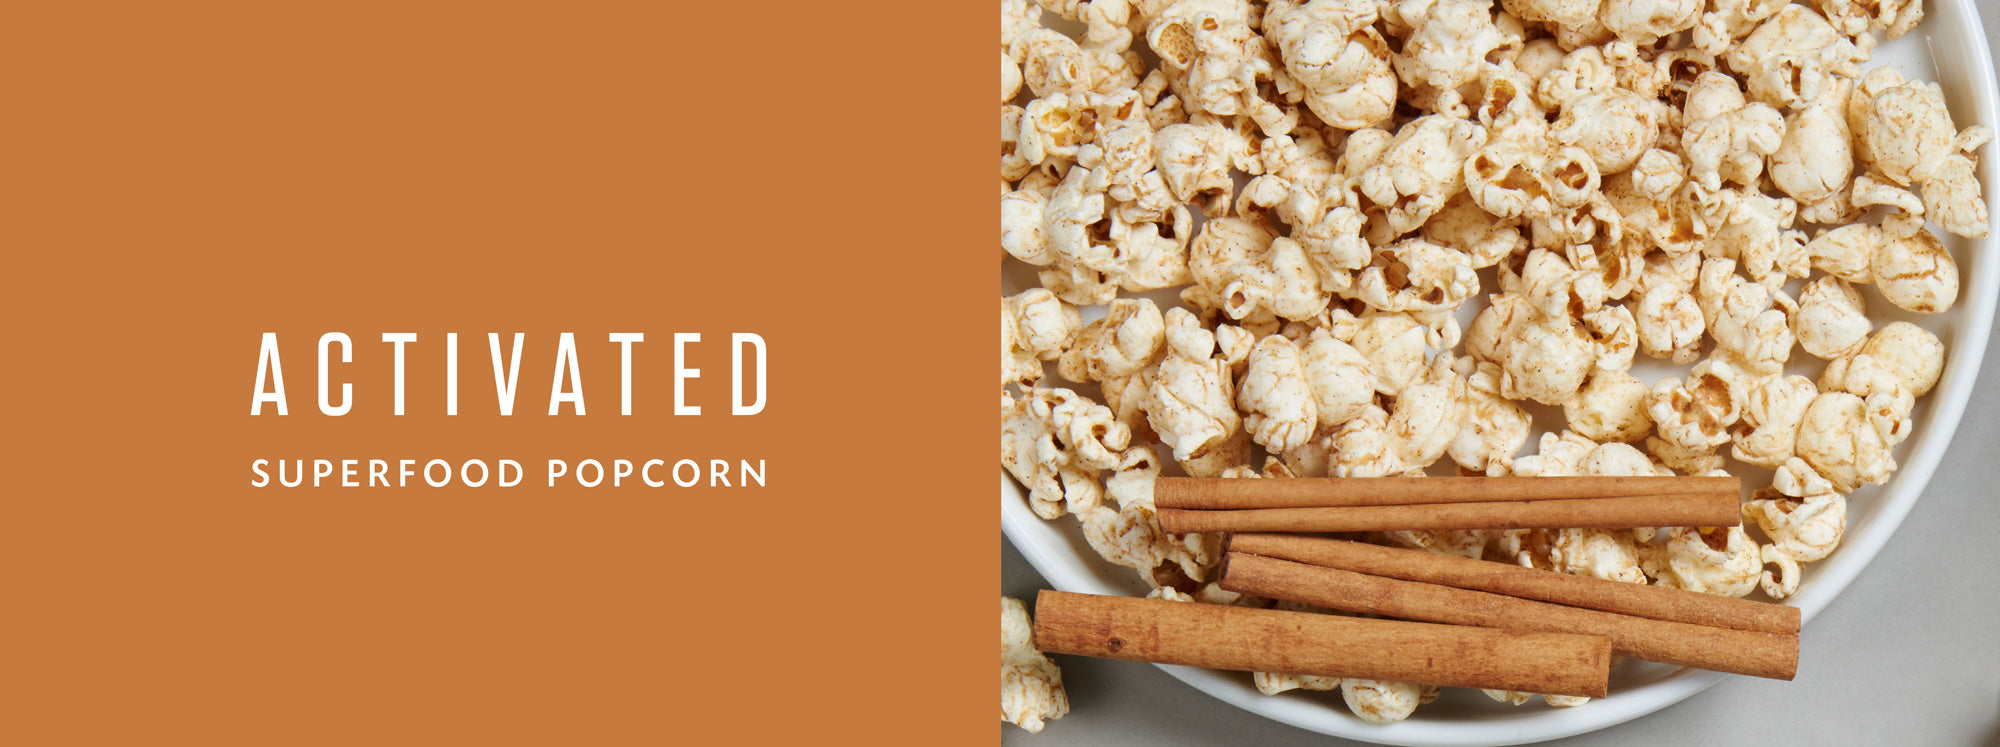 Activated Superfood Popcorn Cinnamon Twist Snack Food